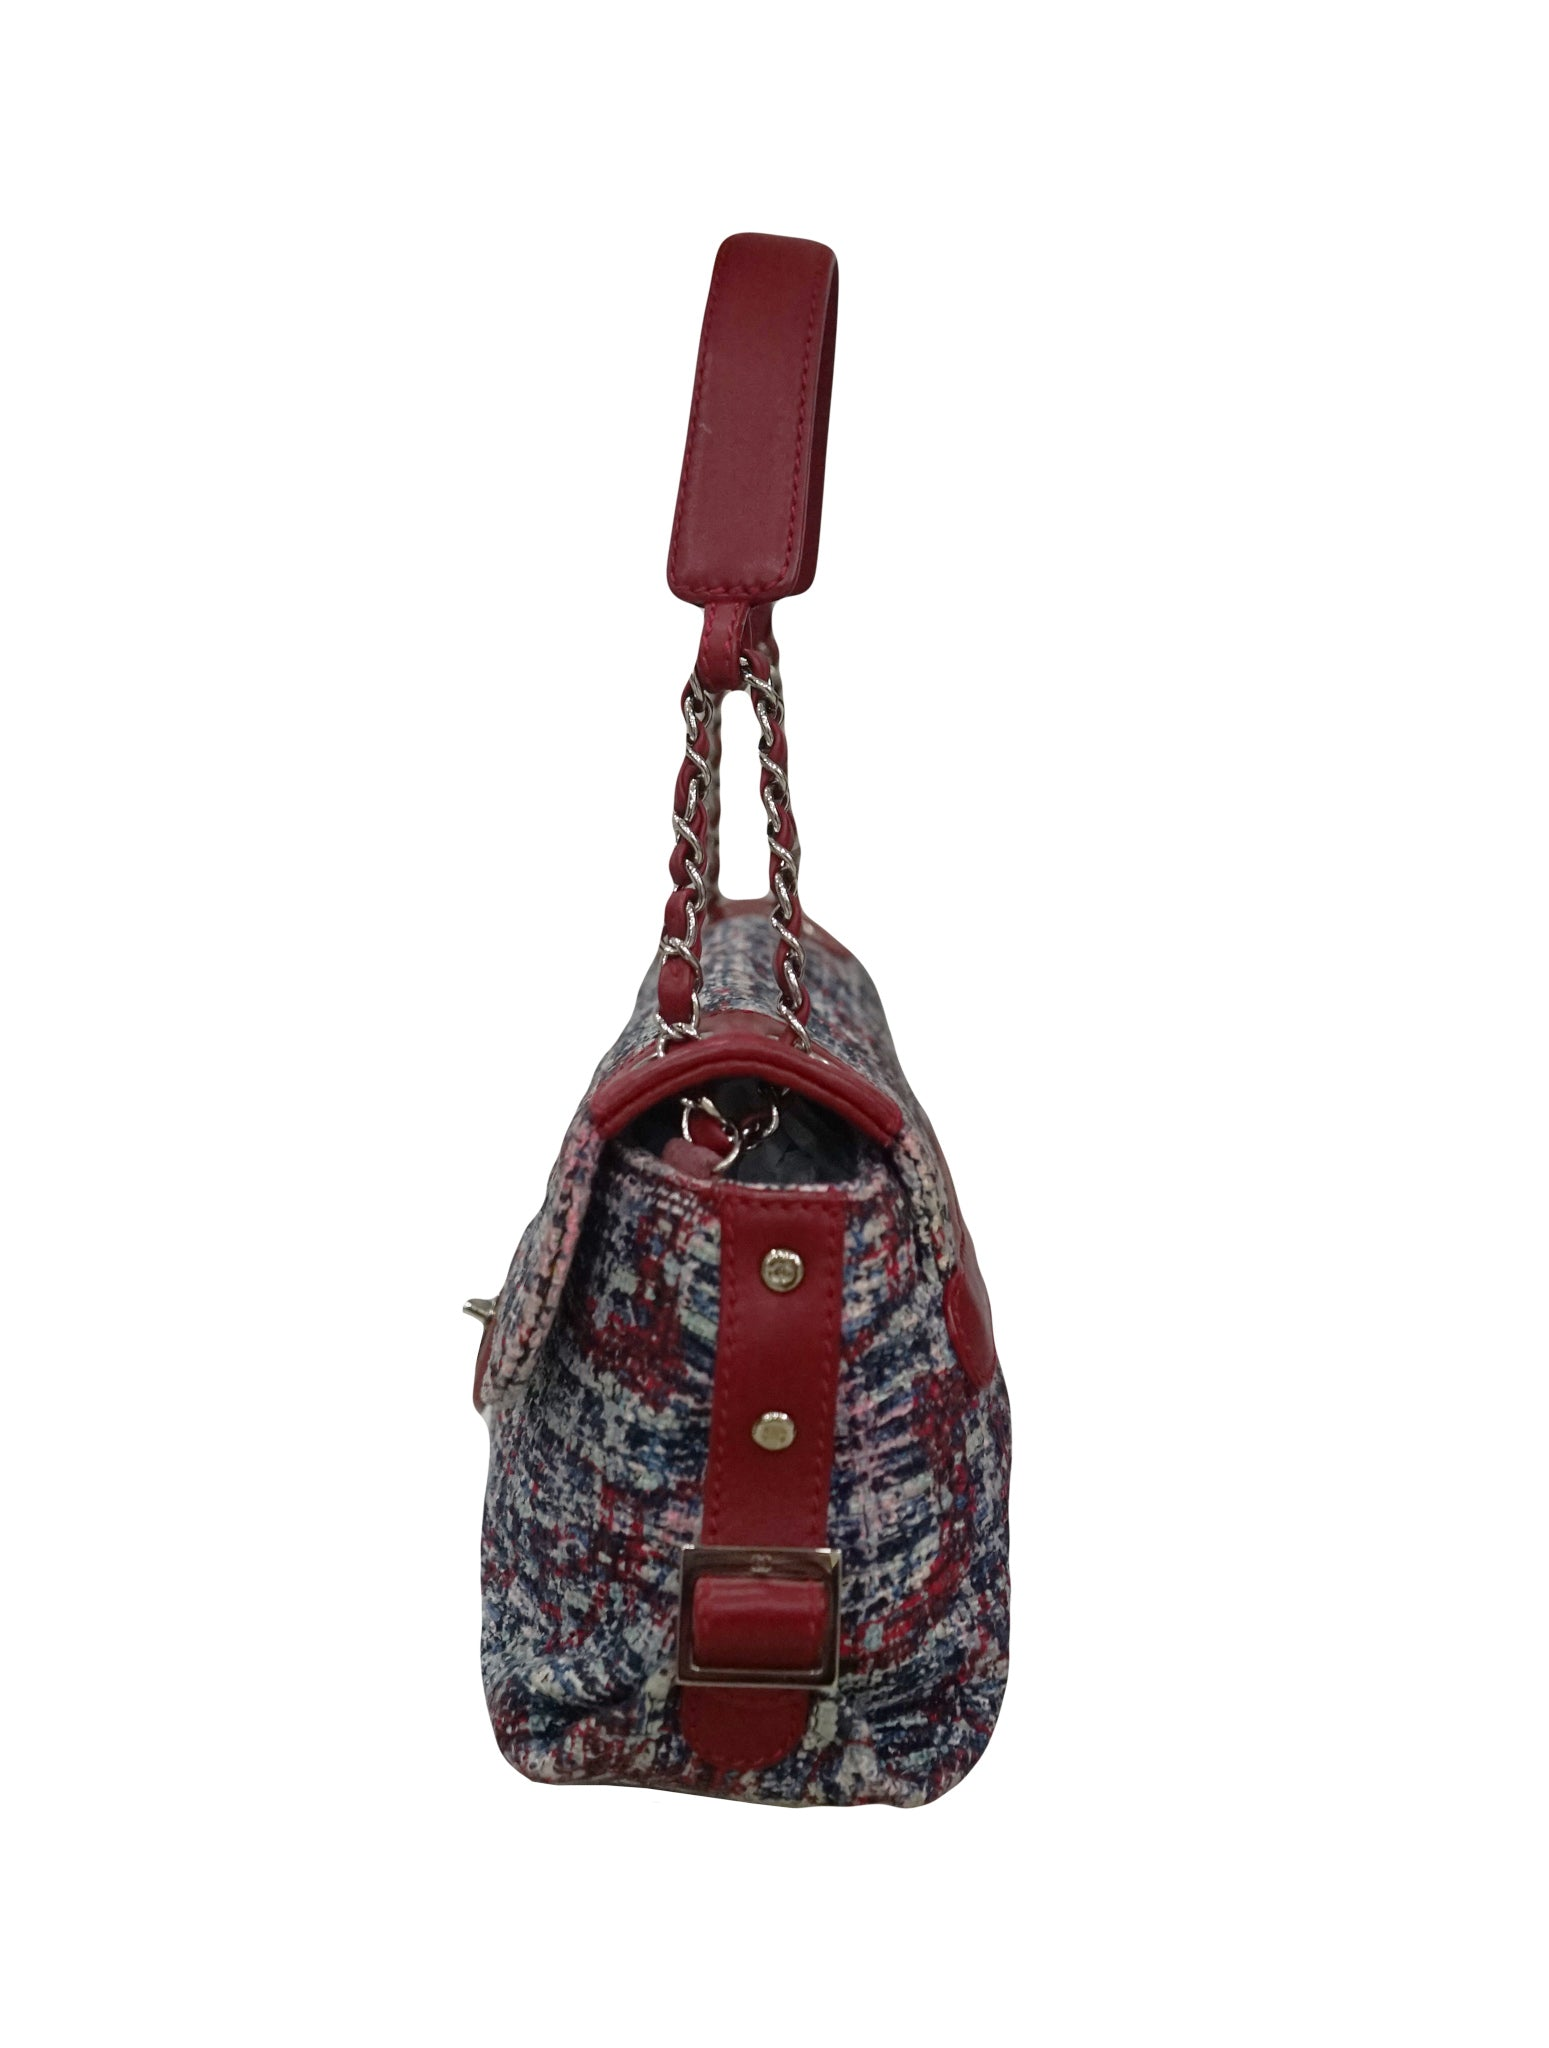 RED CHAIN TWEED LEATHER SHOULDER BAG